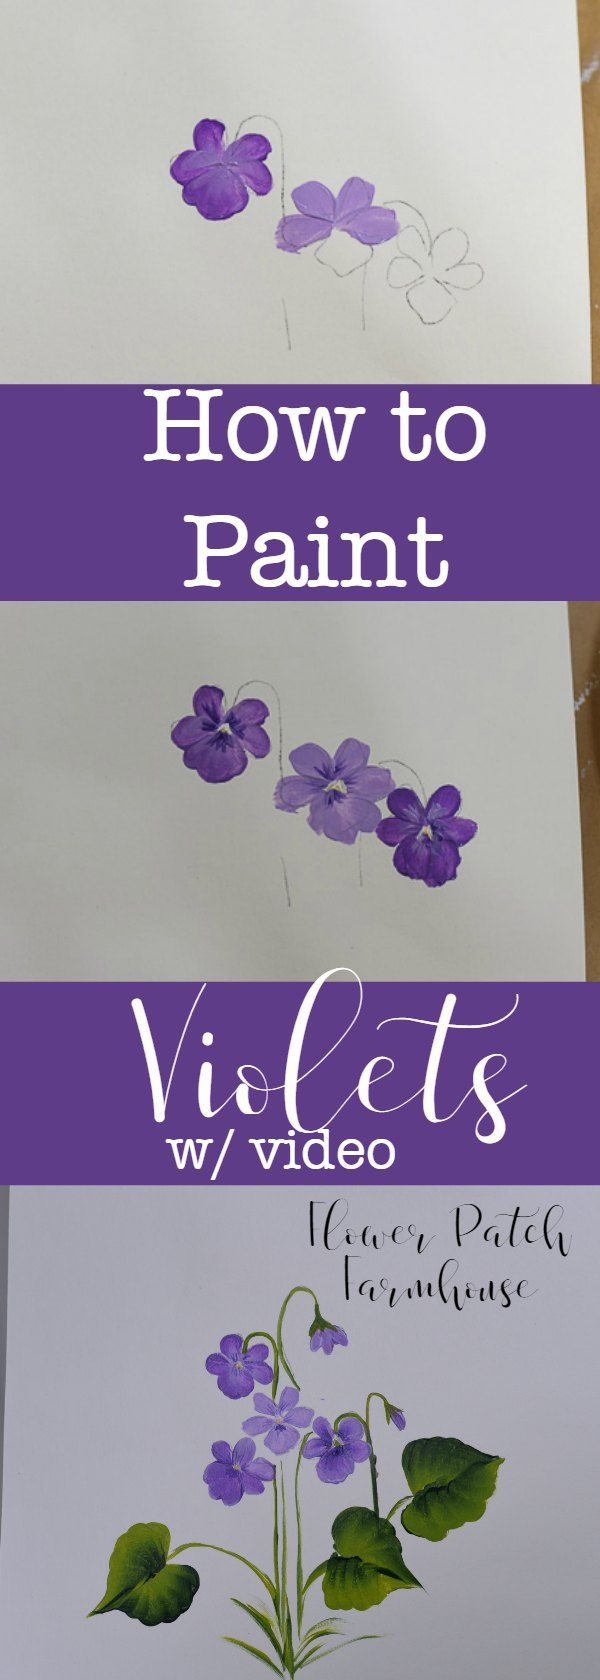 Learn how to Paint Violets 3 Ways - Pamela Groppe Art